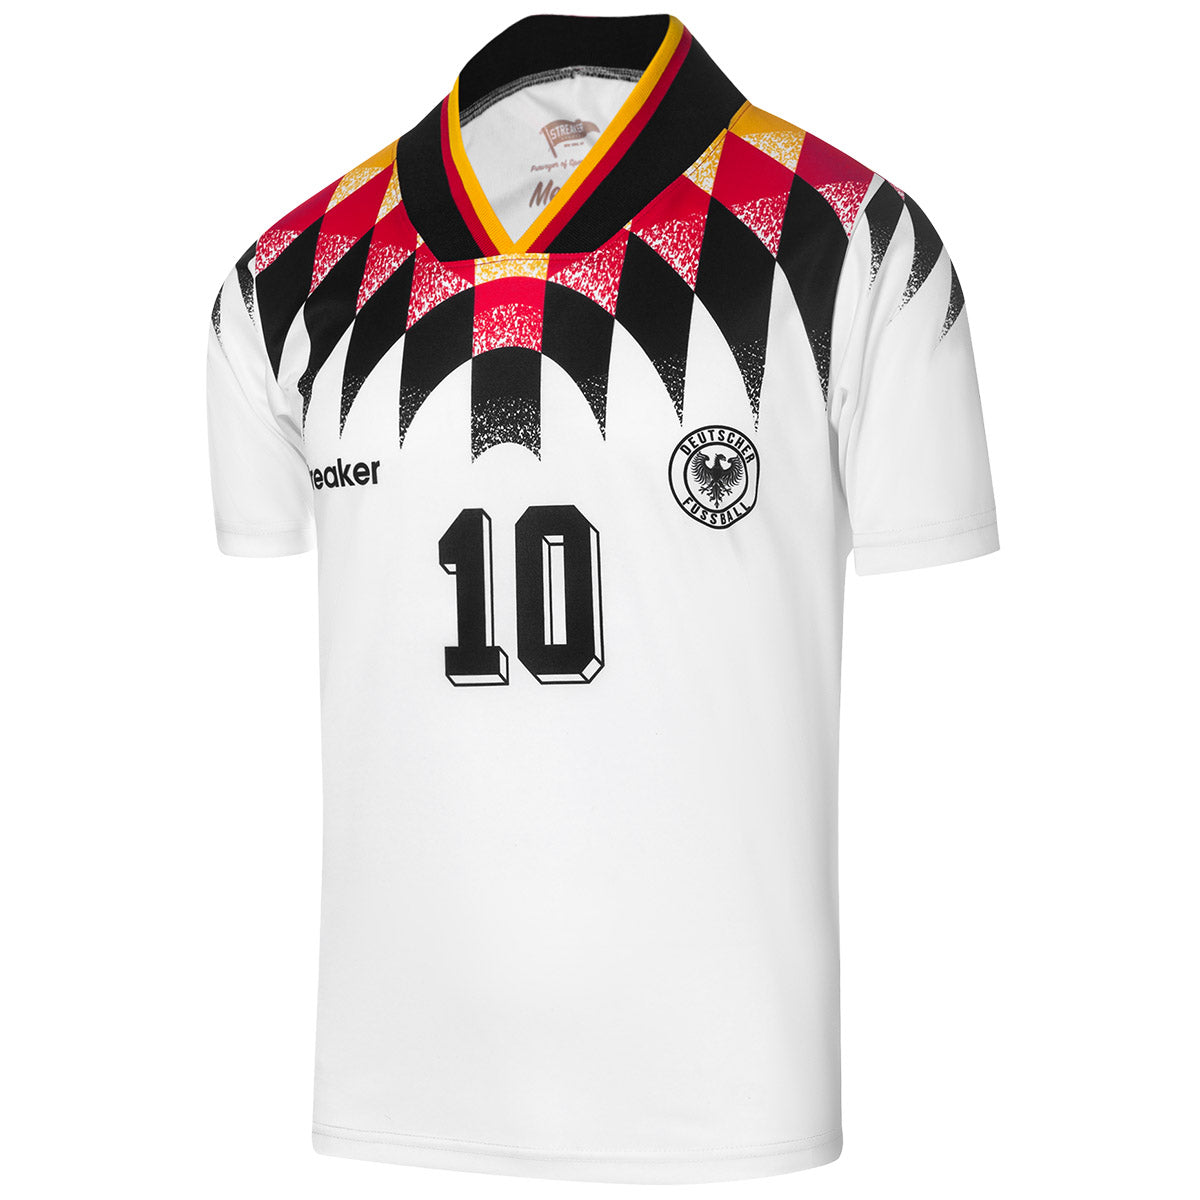 1994 Germany World Cup Soccer Jersey